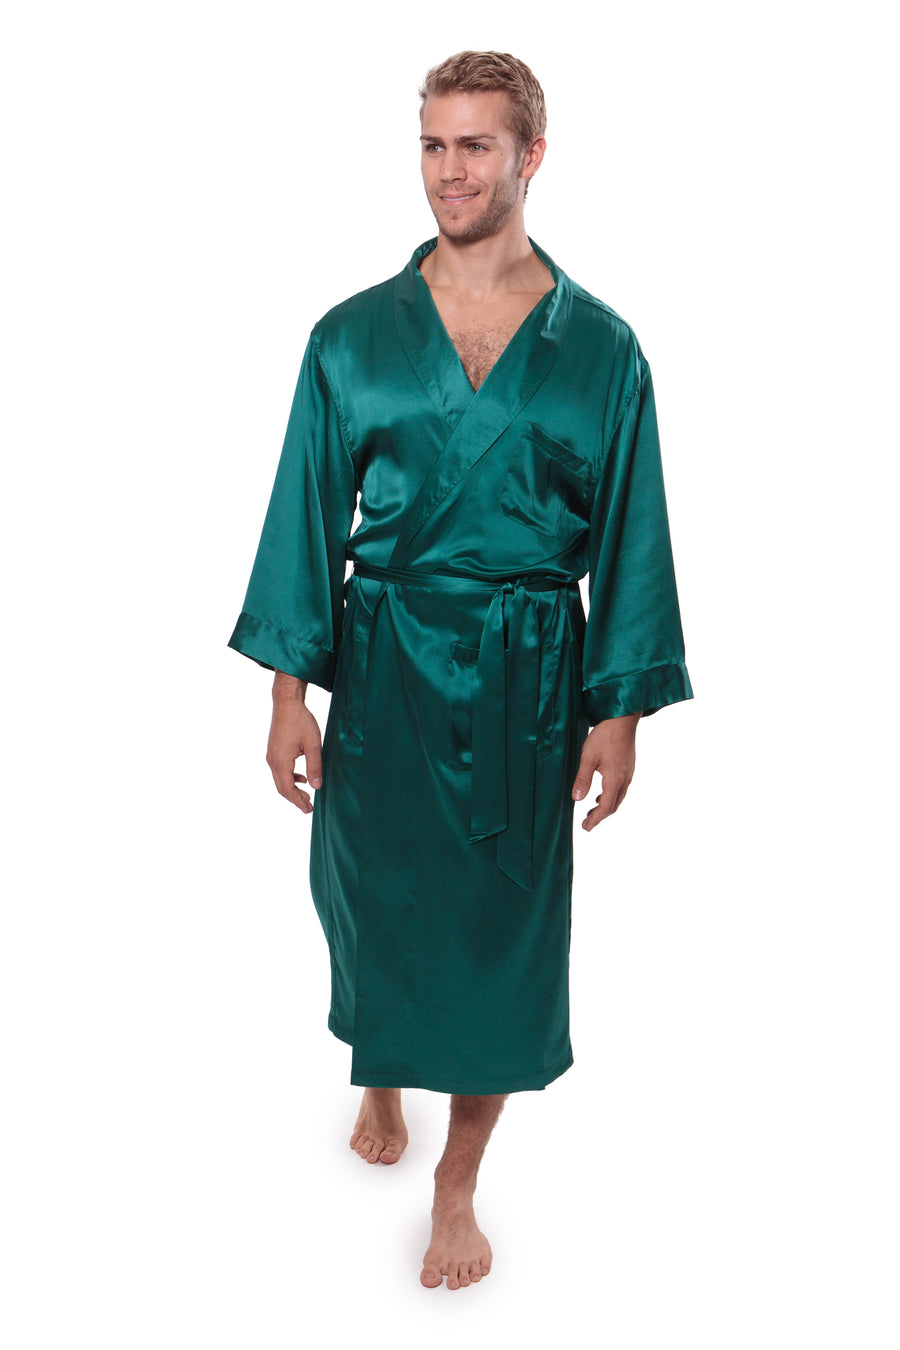 Turin - Men's Silk Robe - TexereSilk